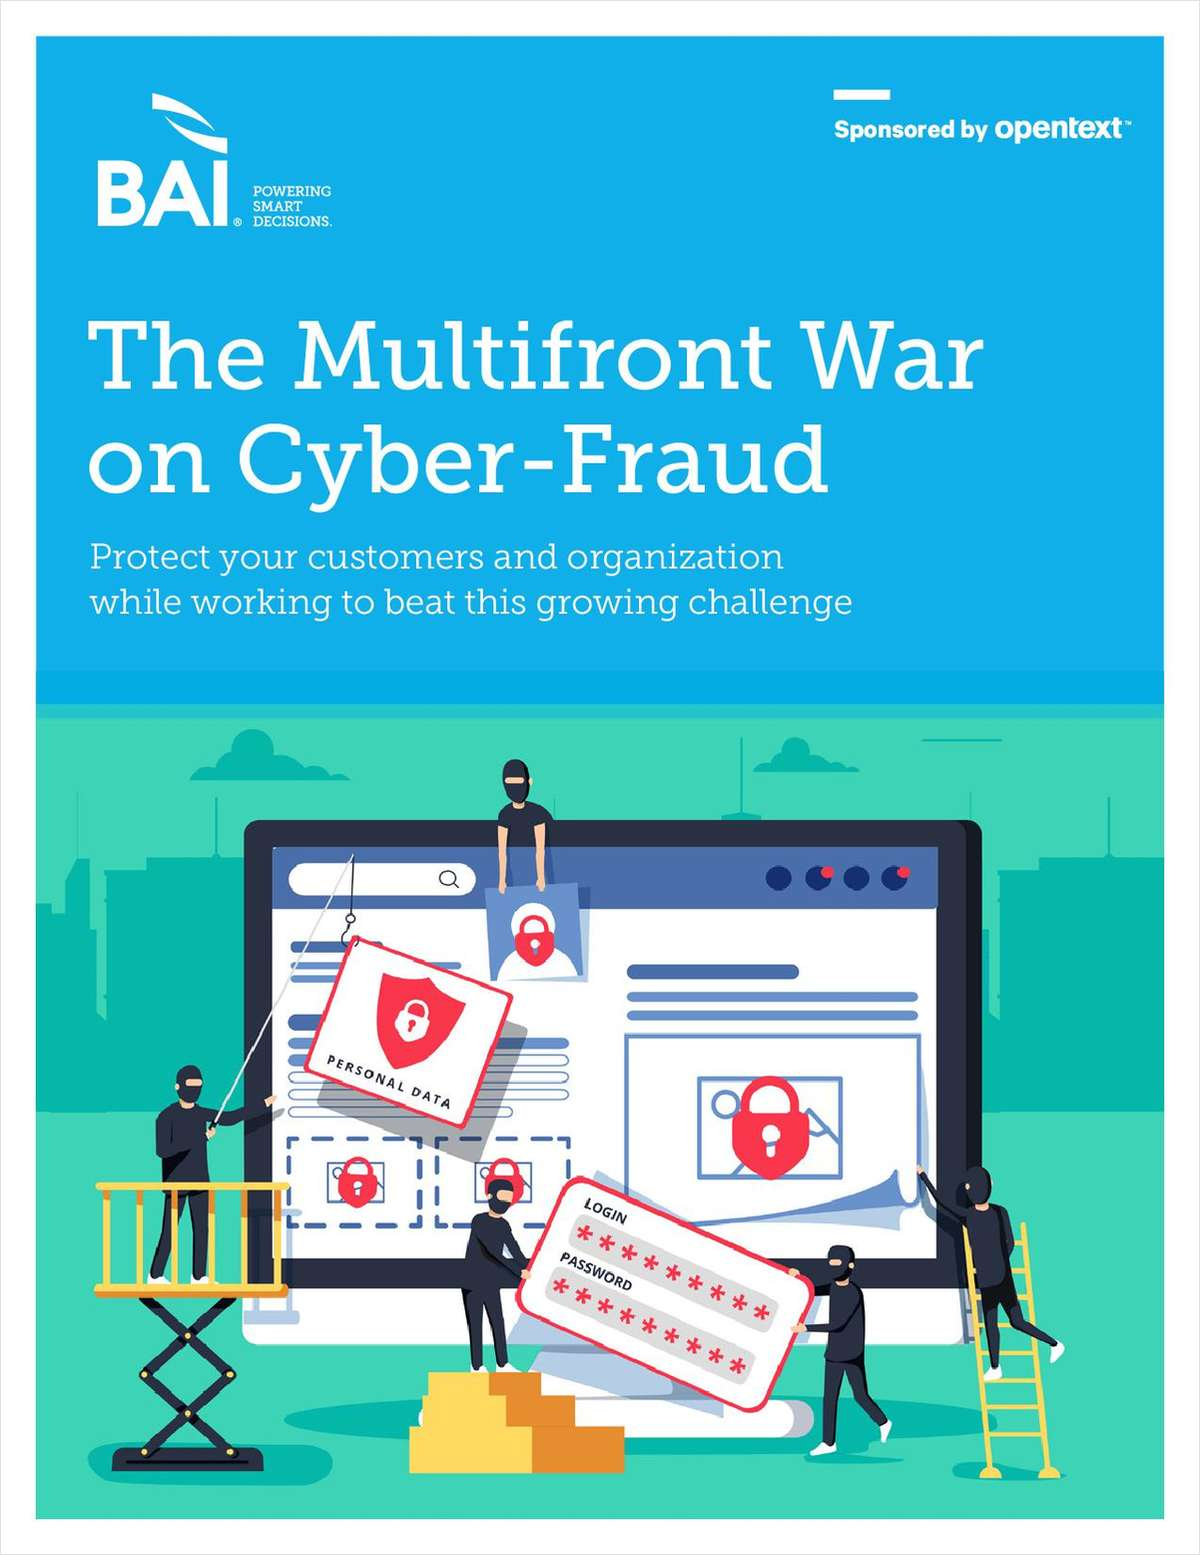 The Multifront War on Cyber-Fraud